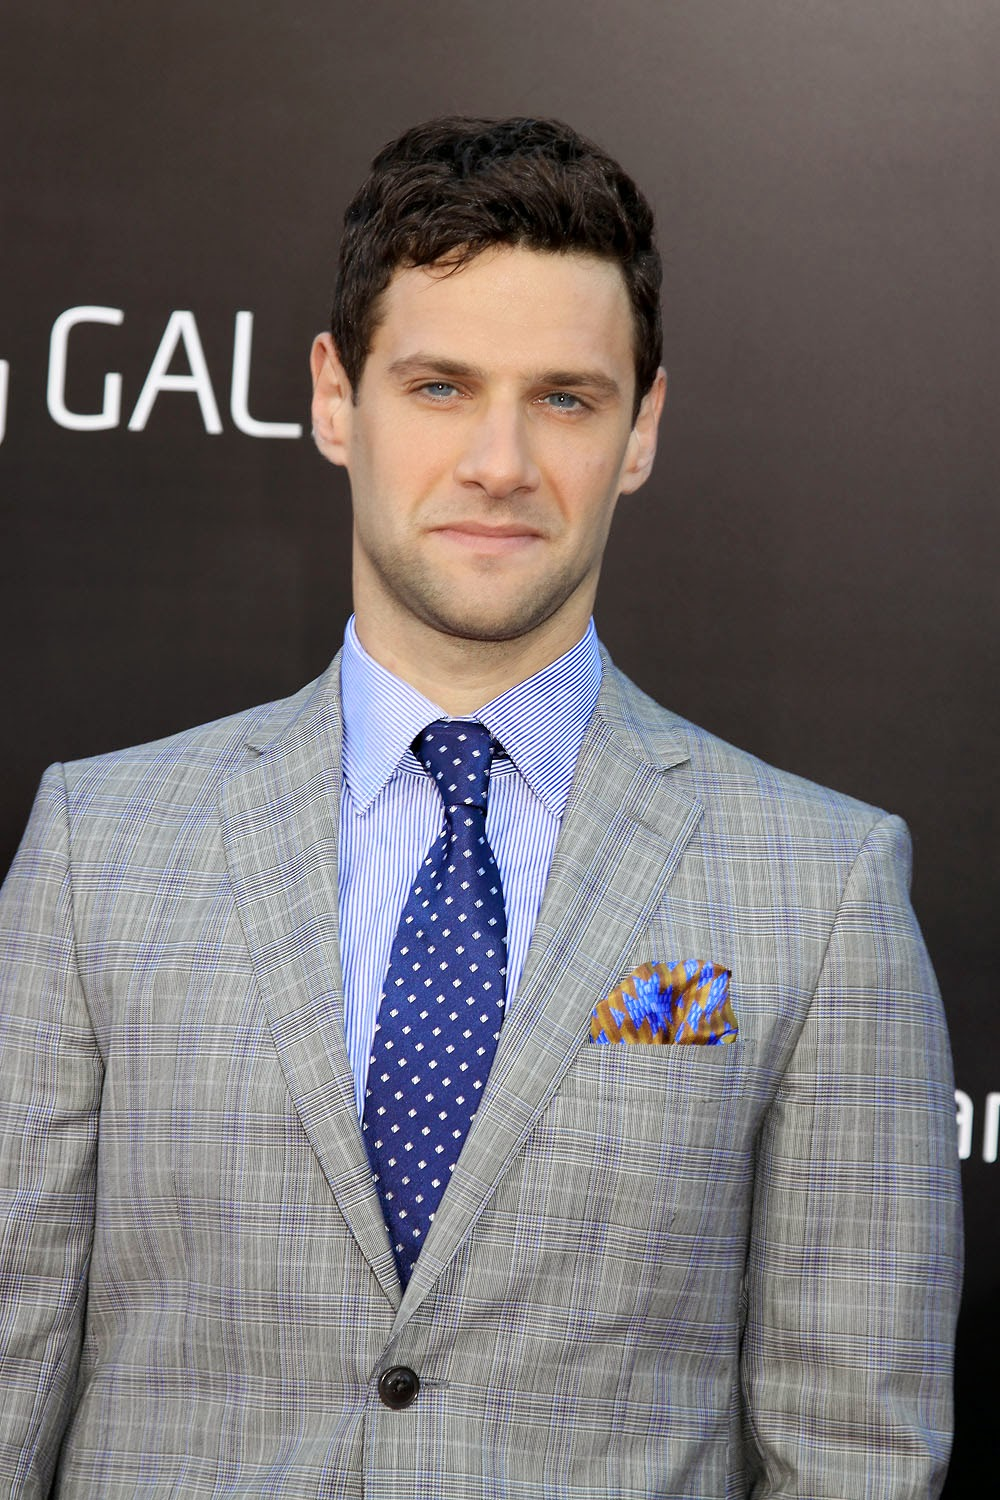 Justin Lee Bartha is an American actor